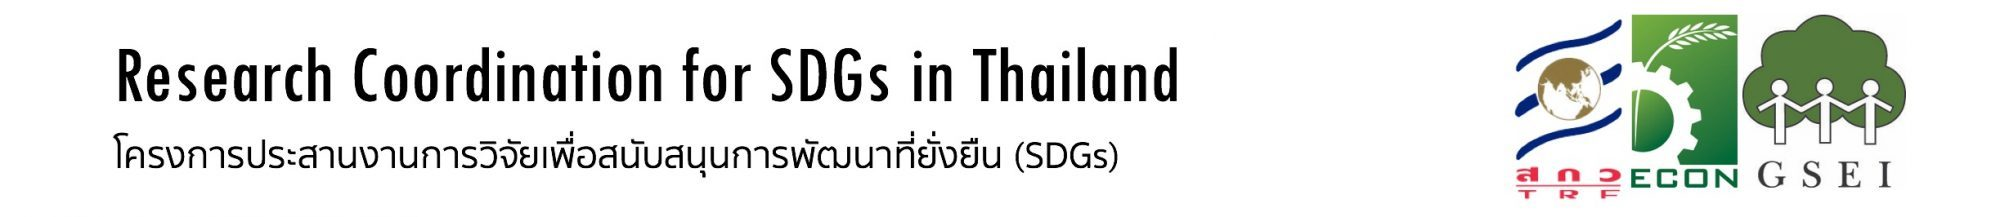 cropped-cropped-banner711.jpg